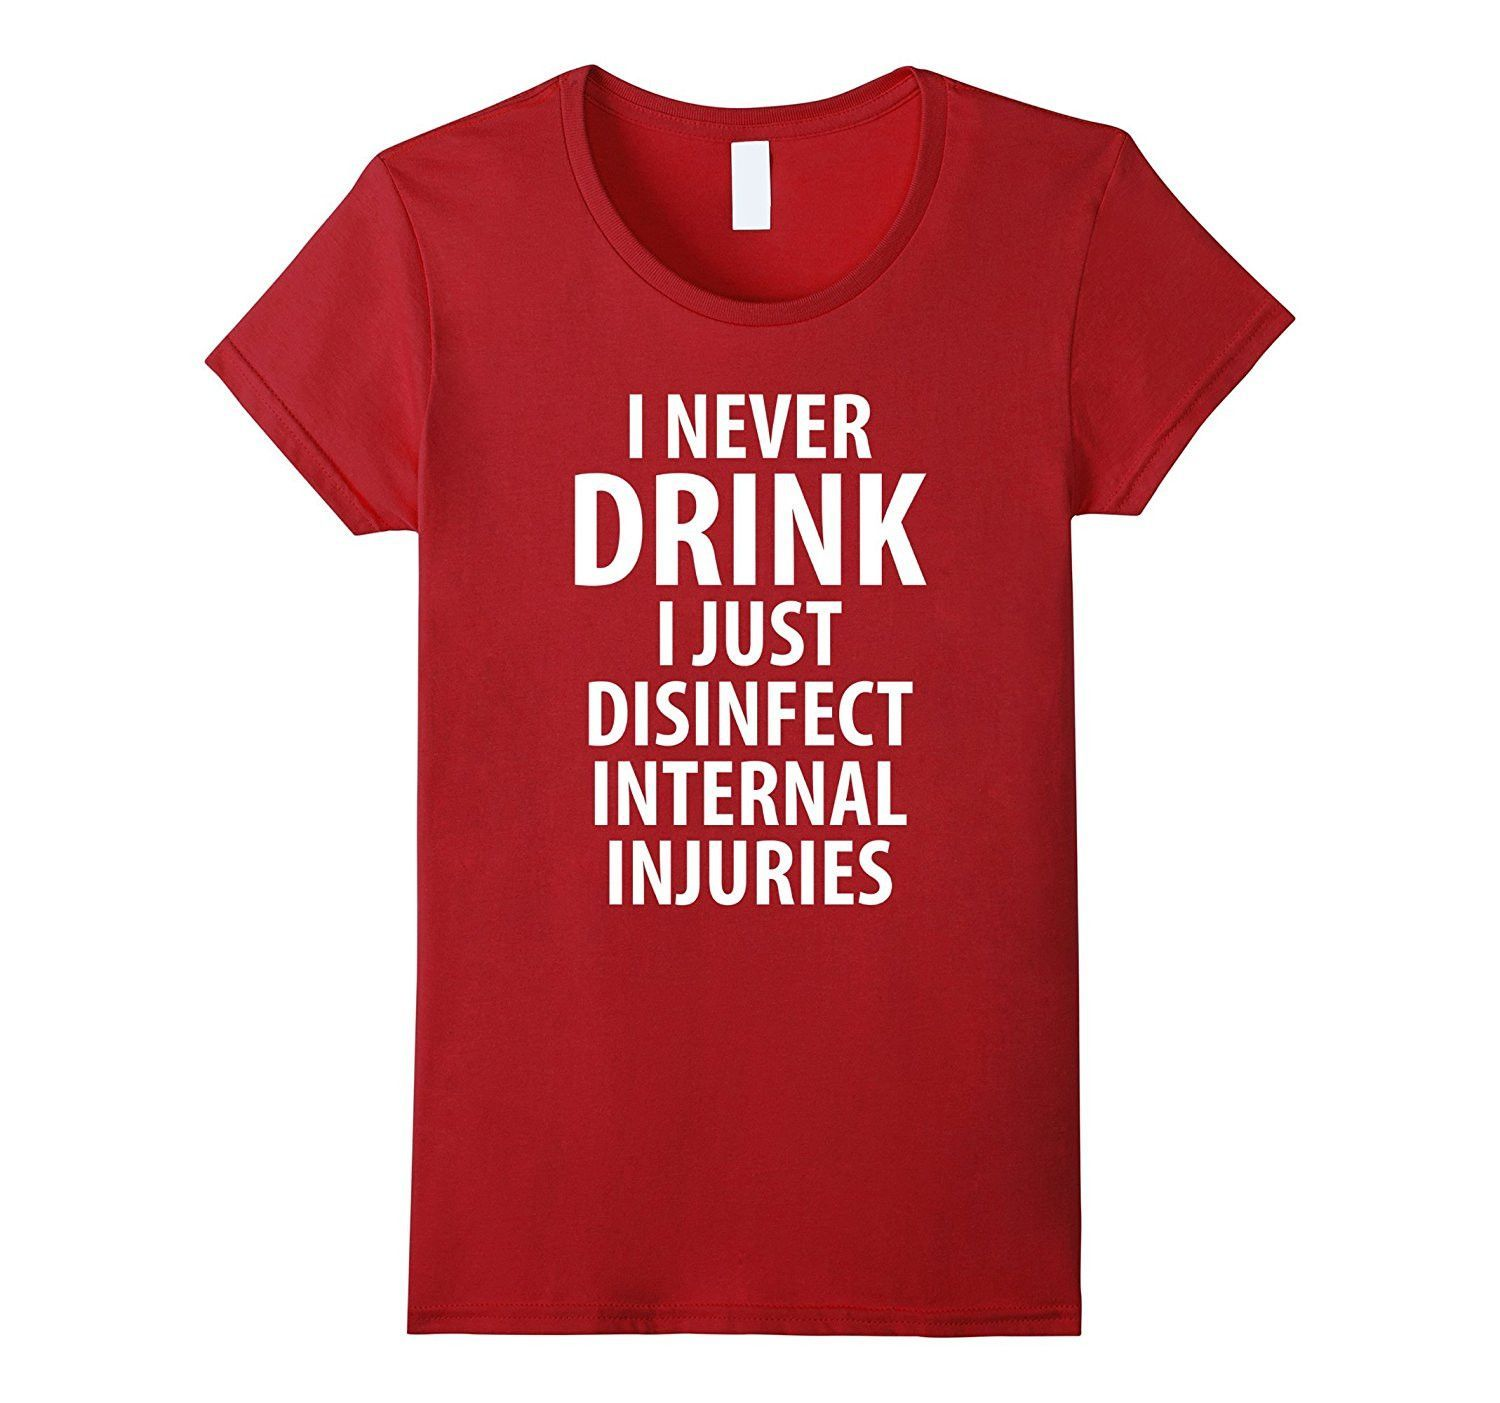 I Never Drink Just Disinfect Internal Injuries T-Shirt